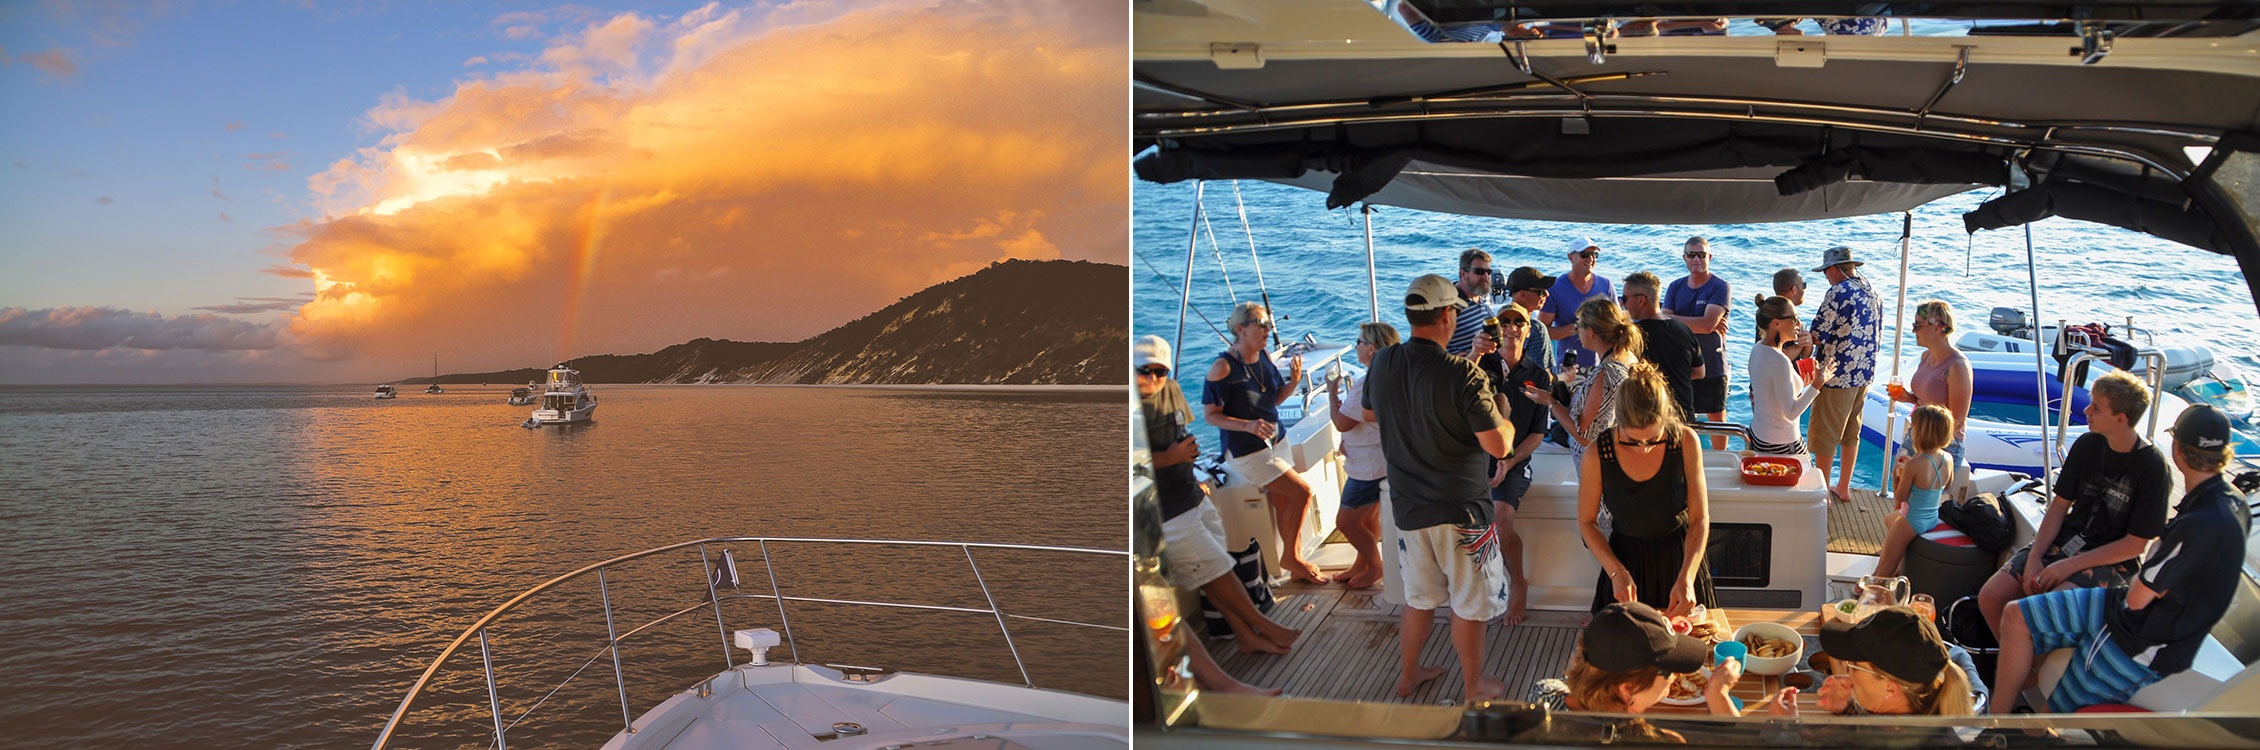 Left: Dramatic skies over the flotilla. Right: Enjoying the camaraderie during the raft-up party.